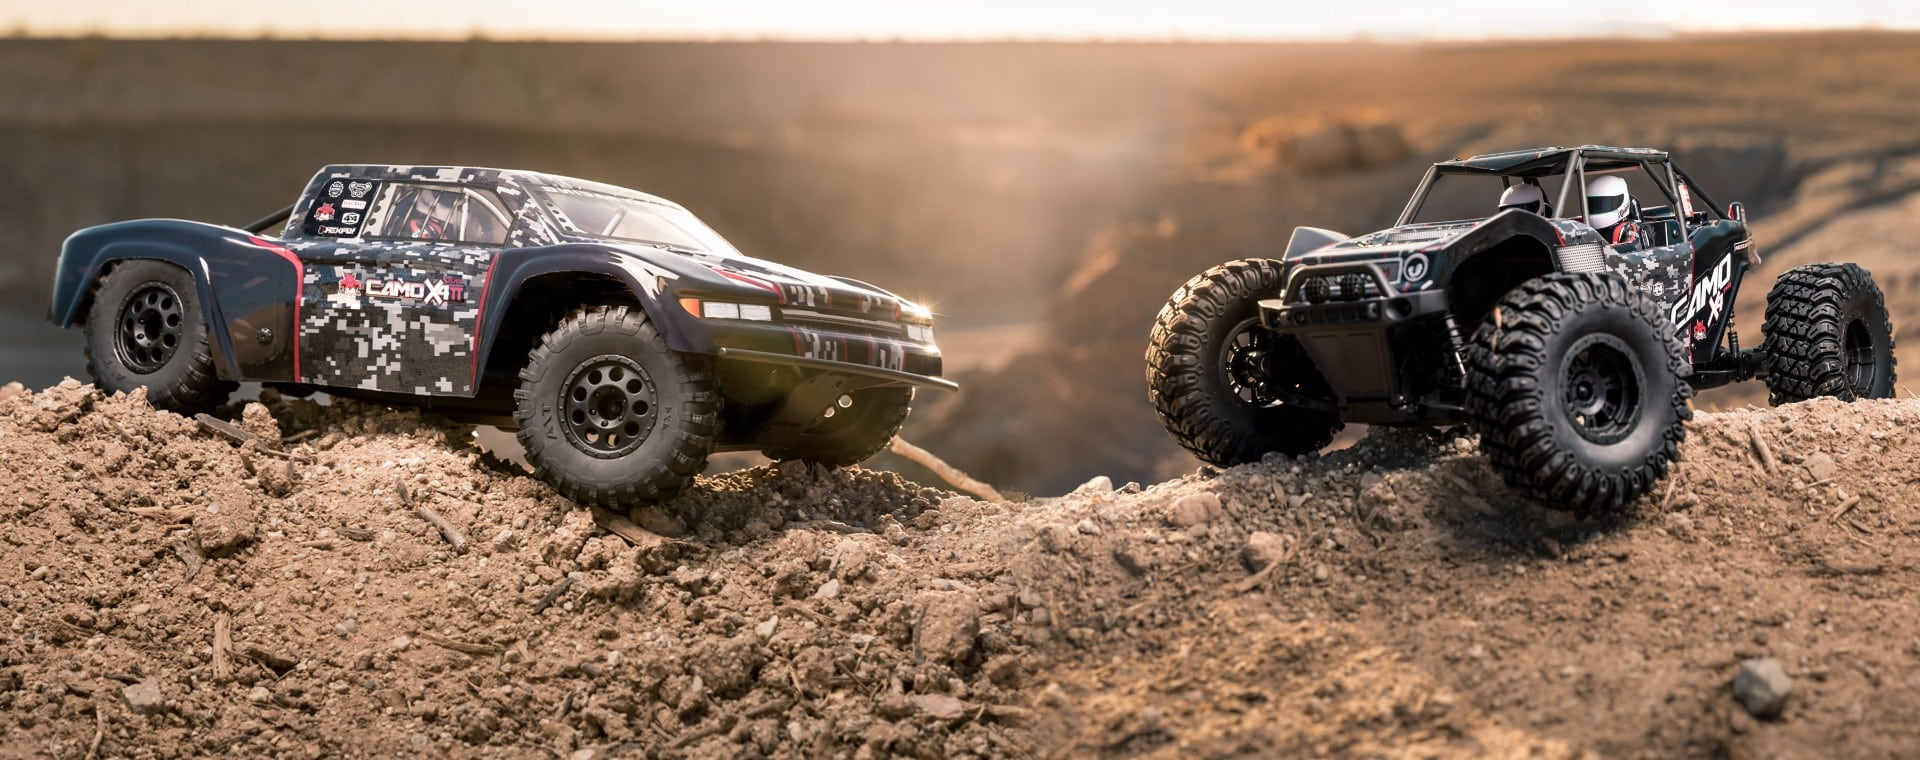 Back in Stock and Ready for Action: Redcat Racing's Camo-X4 Pro & Camo-TT Pro